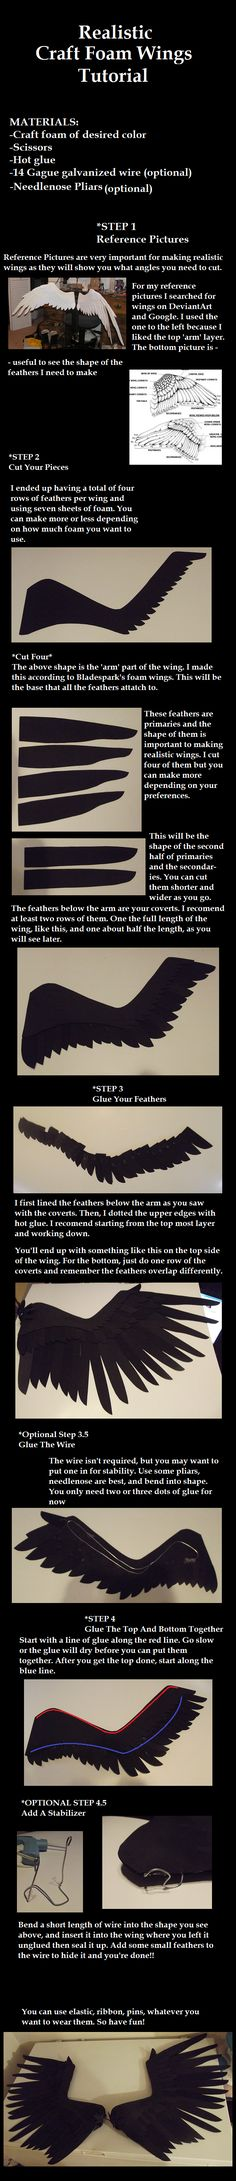 Realistic Foam Wings Tutorial by ~Zexion-the-gamer on deviantART. Good basic cosplay tutorial Realistic Foam Wings Tutorial by ~Zexion-the-gamer on deviantART. Cosplay Wings, Cosplay Diy, Cosplay Costumes, Costume Wings, Wings Tutorial, Diy Tutorial, Costume Tutorial, Cosplay Tutorial, Larp